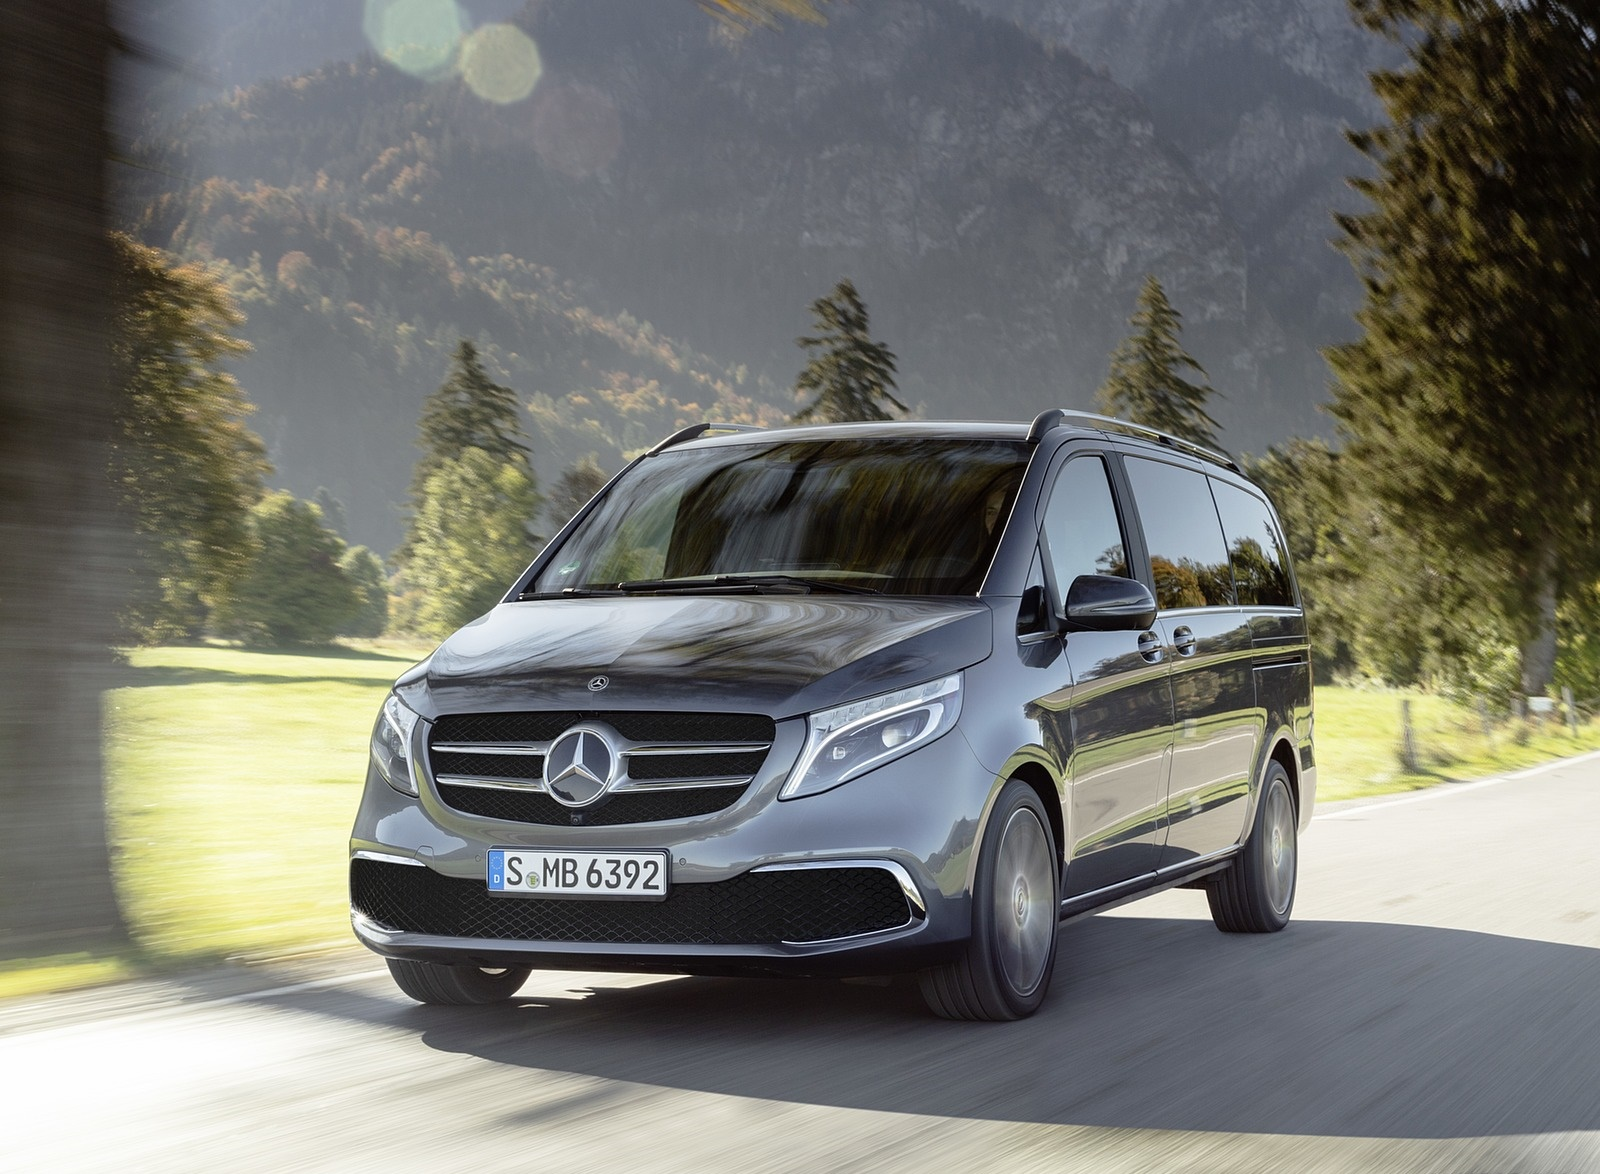 2019 Mercedes-Benz V-Class EXCLUSIVE Line (Color: Selenit Grey Metallic) Front Wallpaper (4)